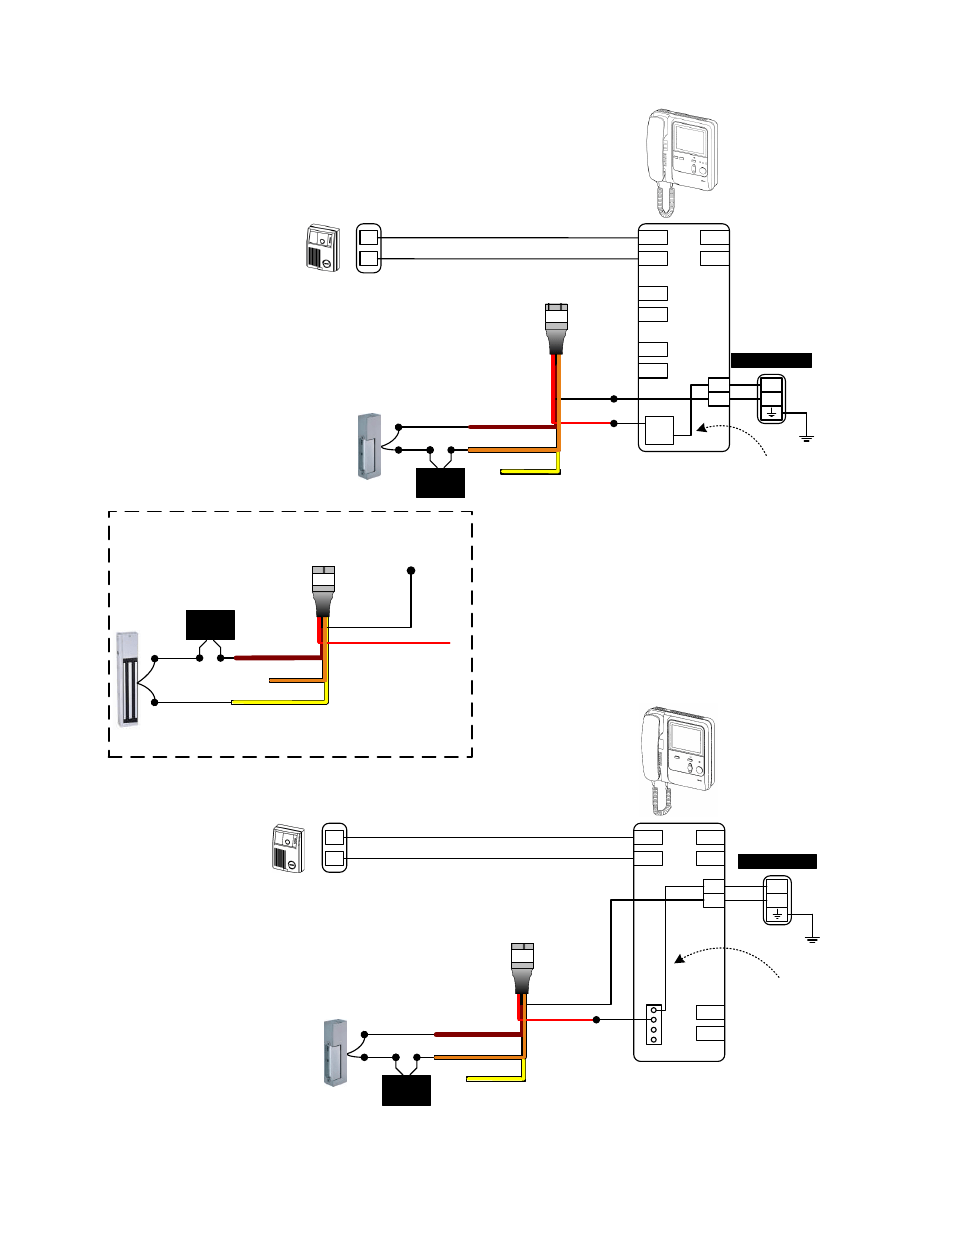 Wiring Diagram 2409 24l on